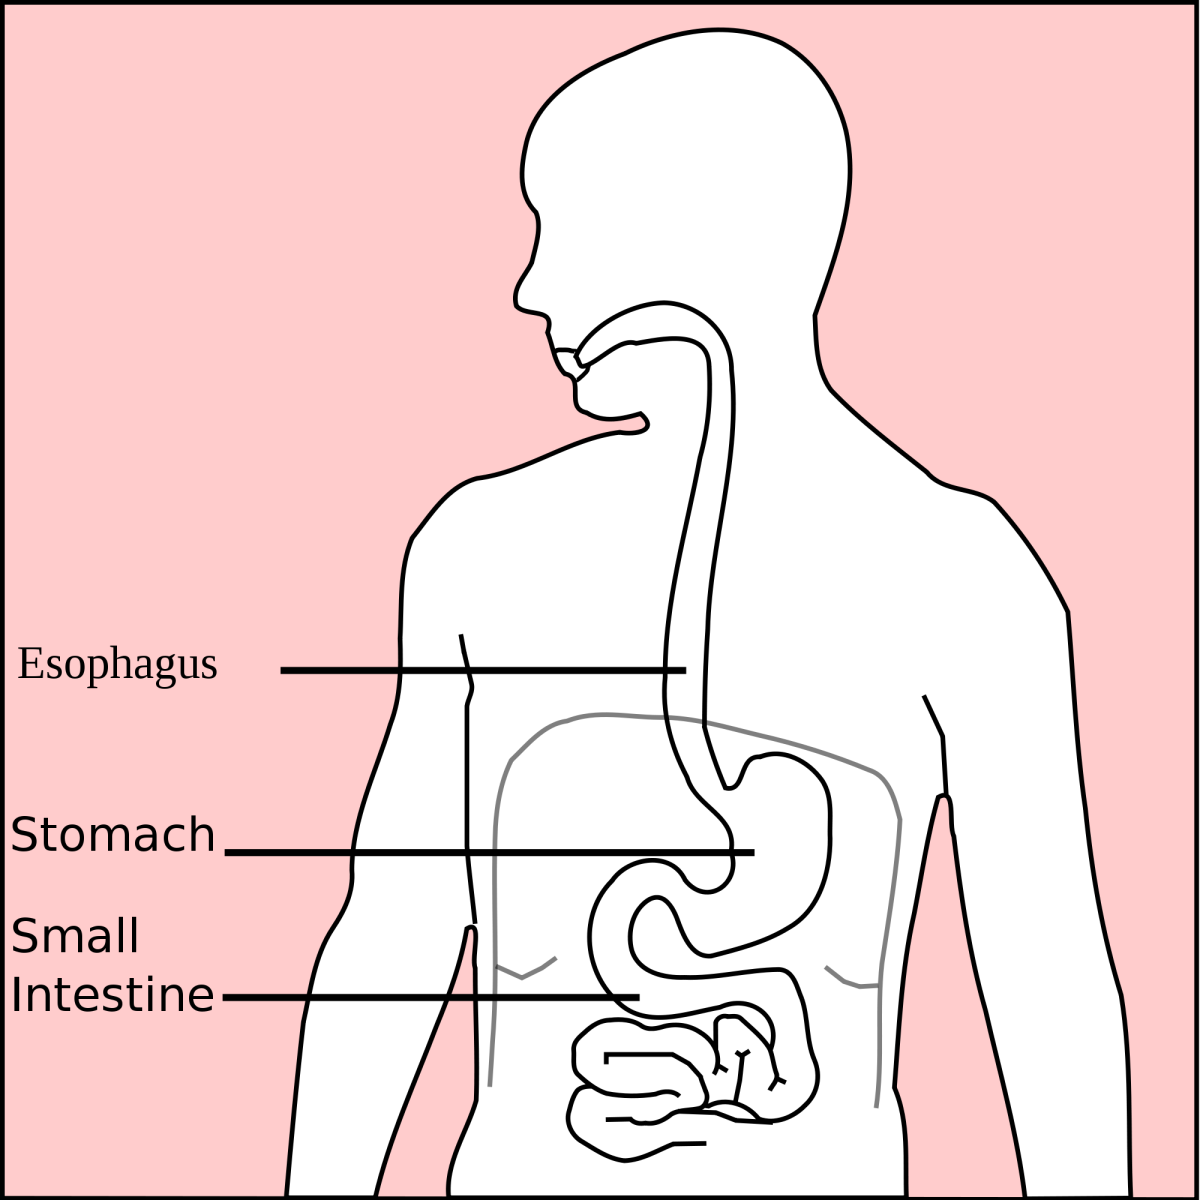 The stomach is an organ of digestion between the esophagus (food pipe) and the small intestine.